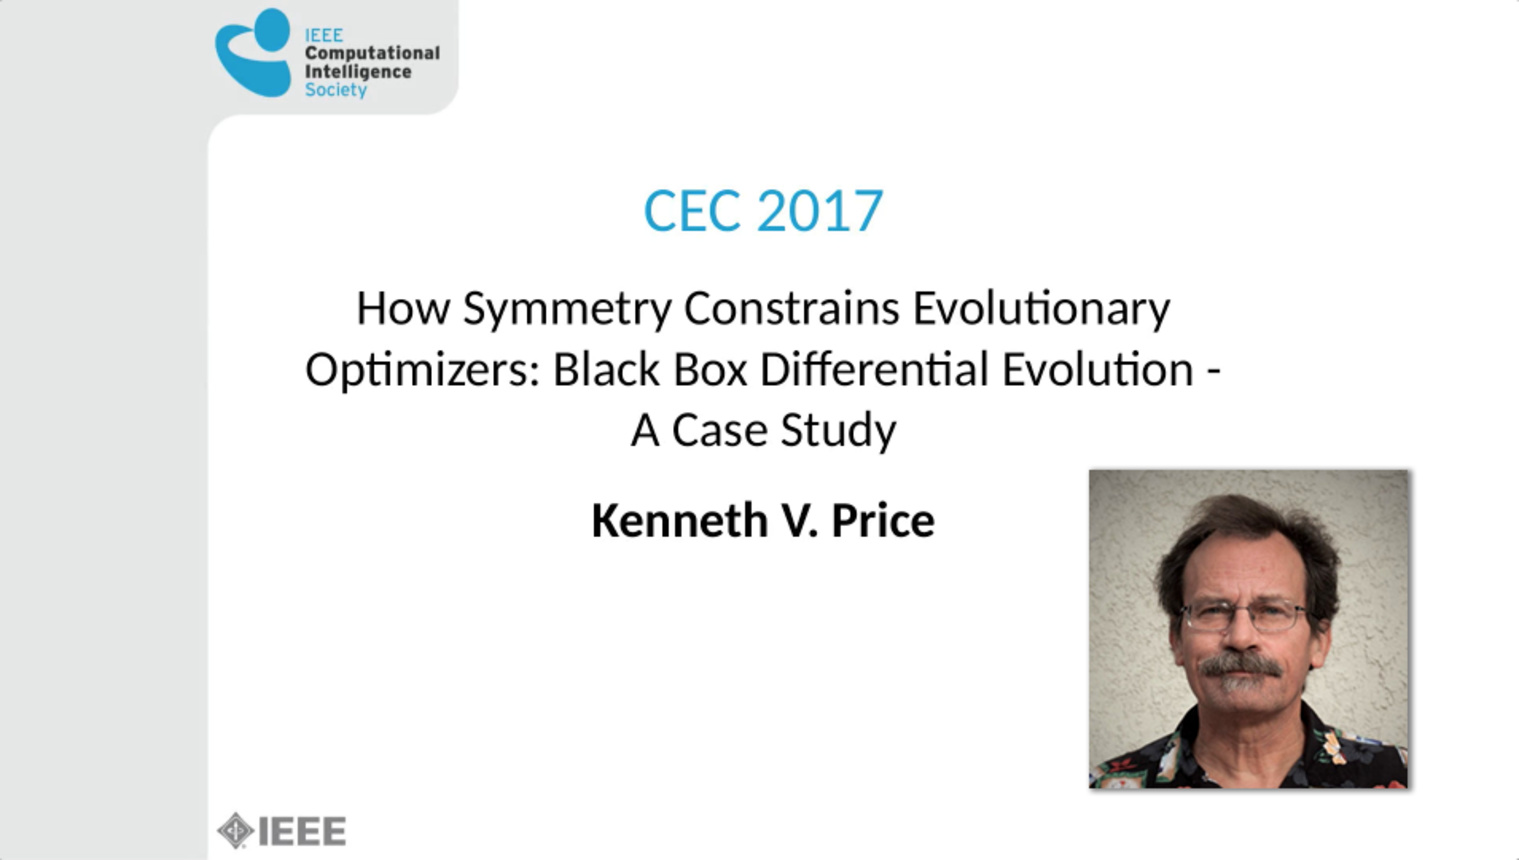 How Symmetry Constrains Evolutionary Optimizers: A Black Box Differential Evolution Case Study - IEEE Congress on Evolutionary Computation 2017